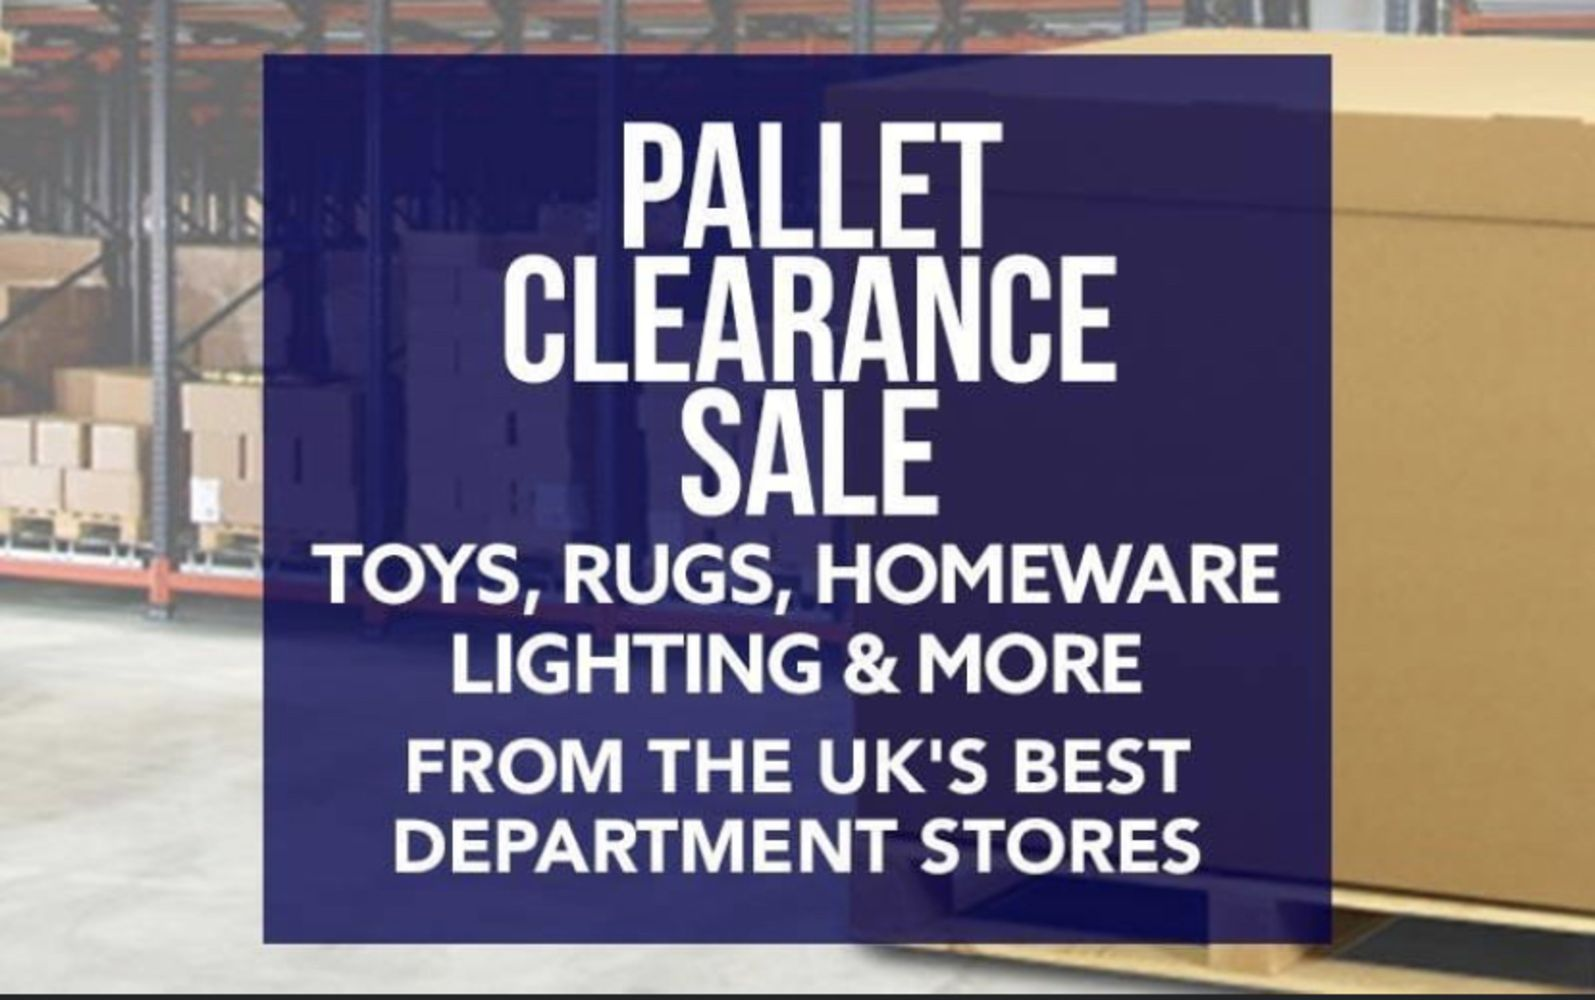 No Reserve - Pallet Clearance Sale! 2nd August 2021